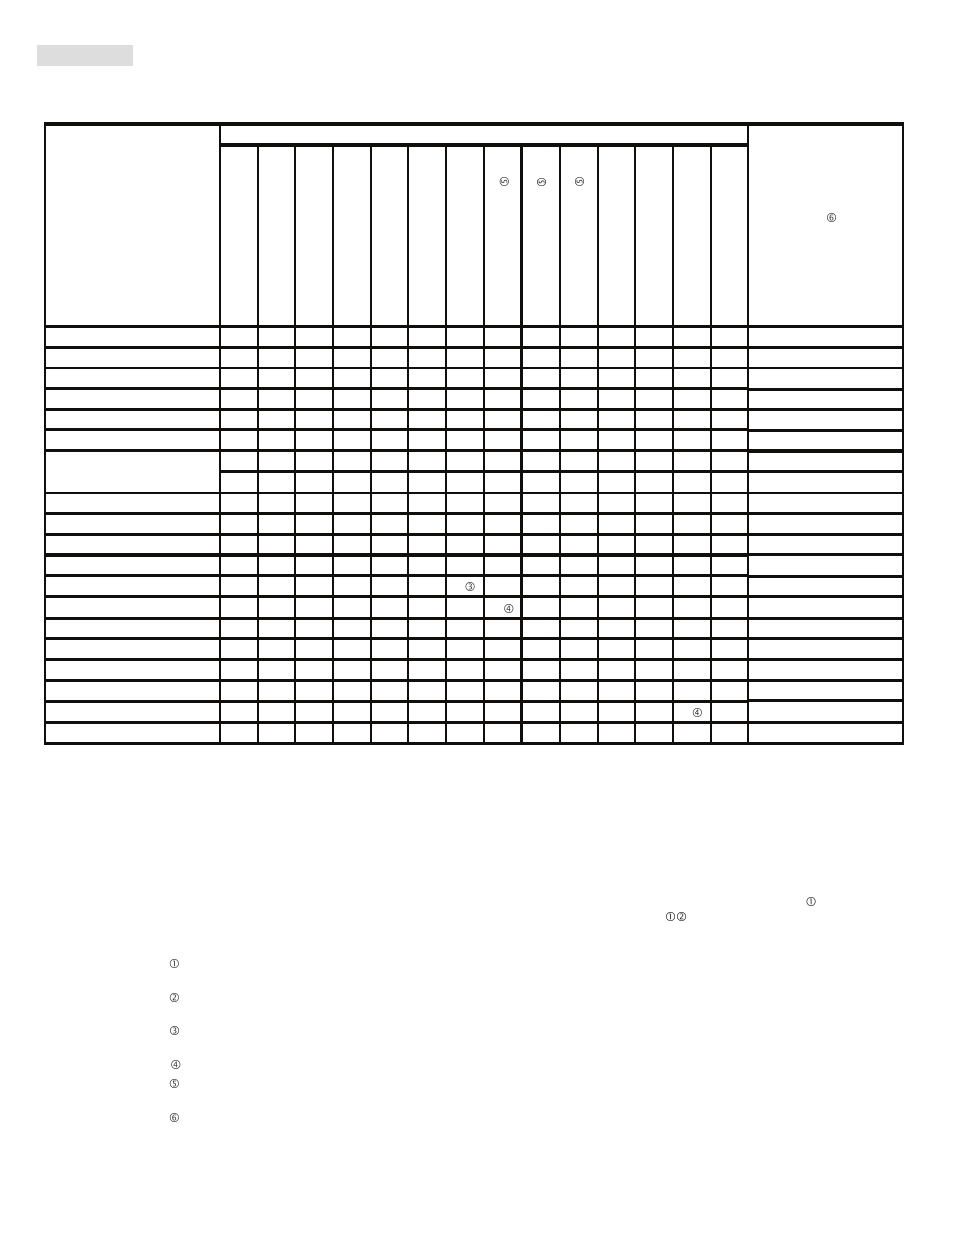 medium resolution of rockwell automation 1492 1771 to 1756 i o swing arm conversion system user manual page 14 16